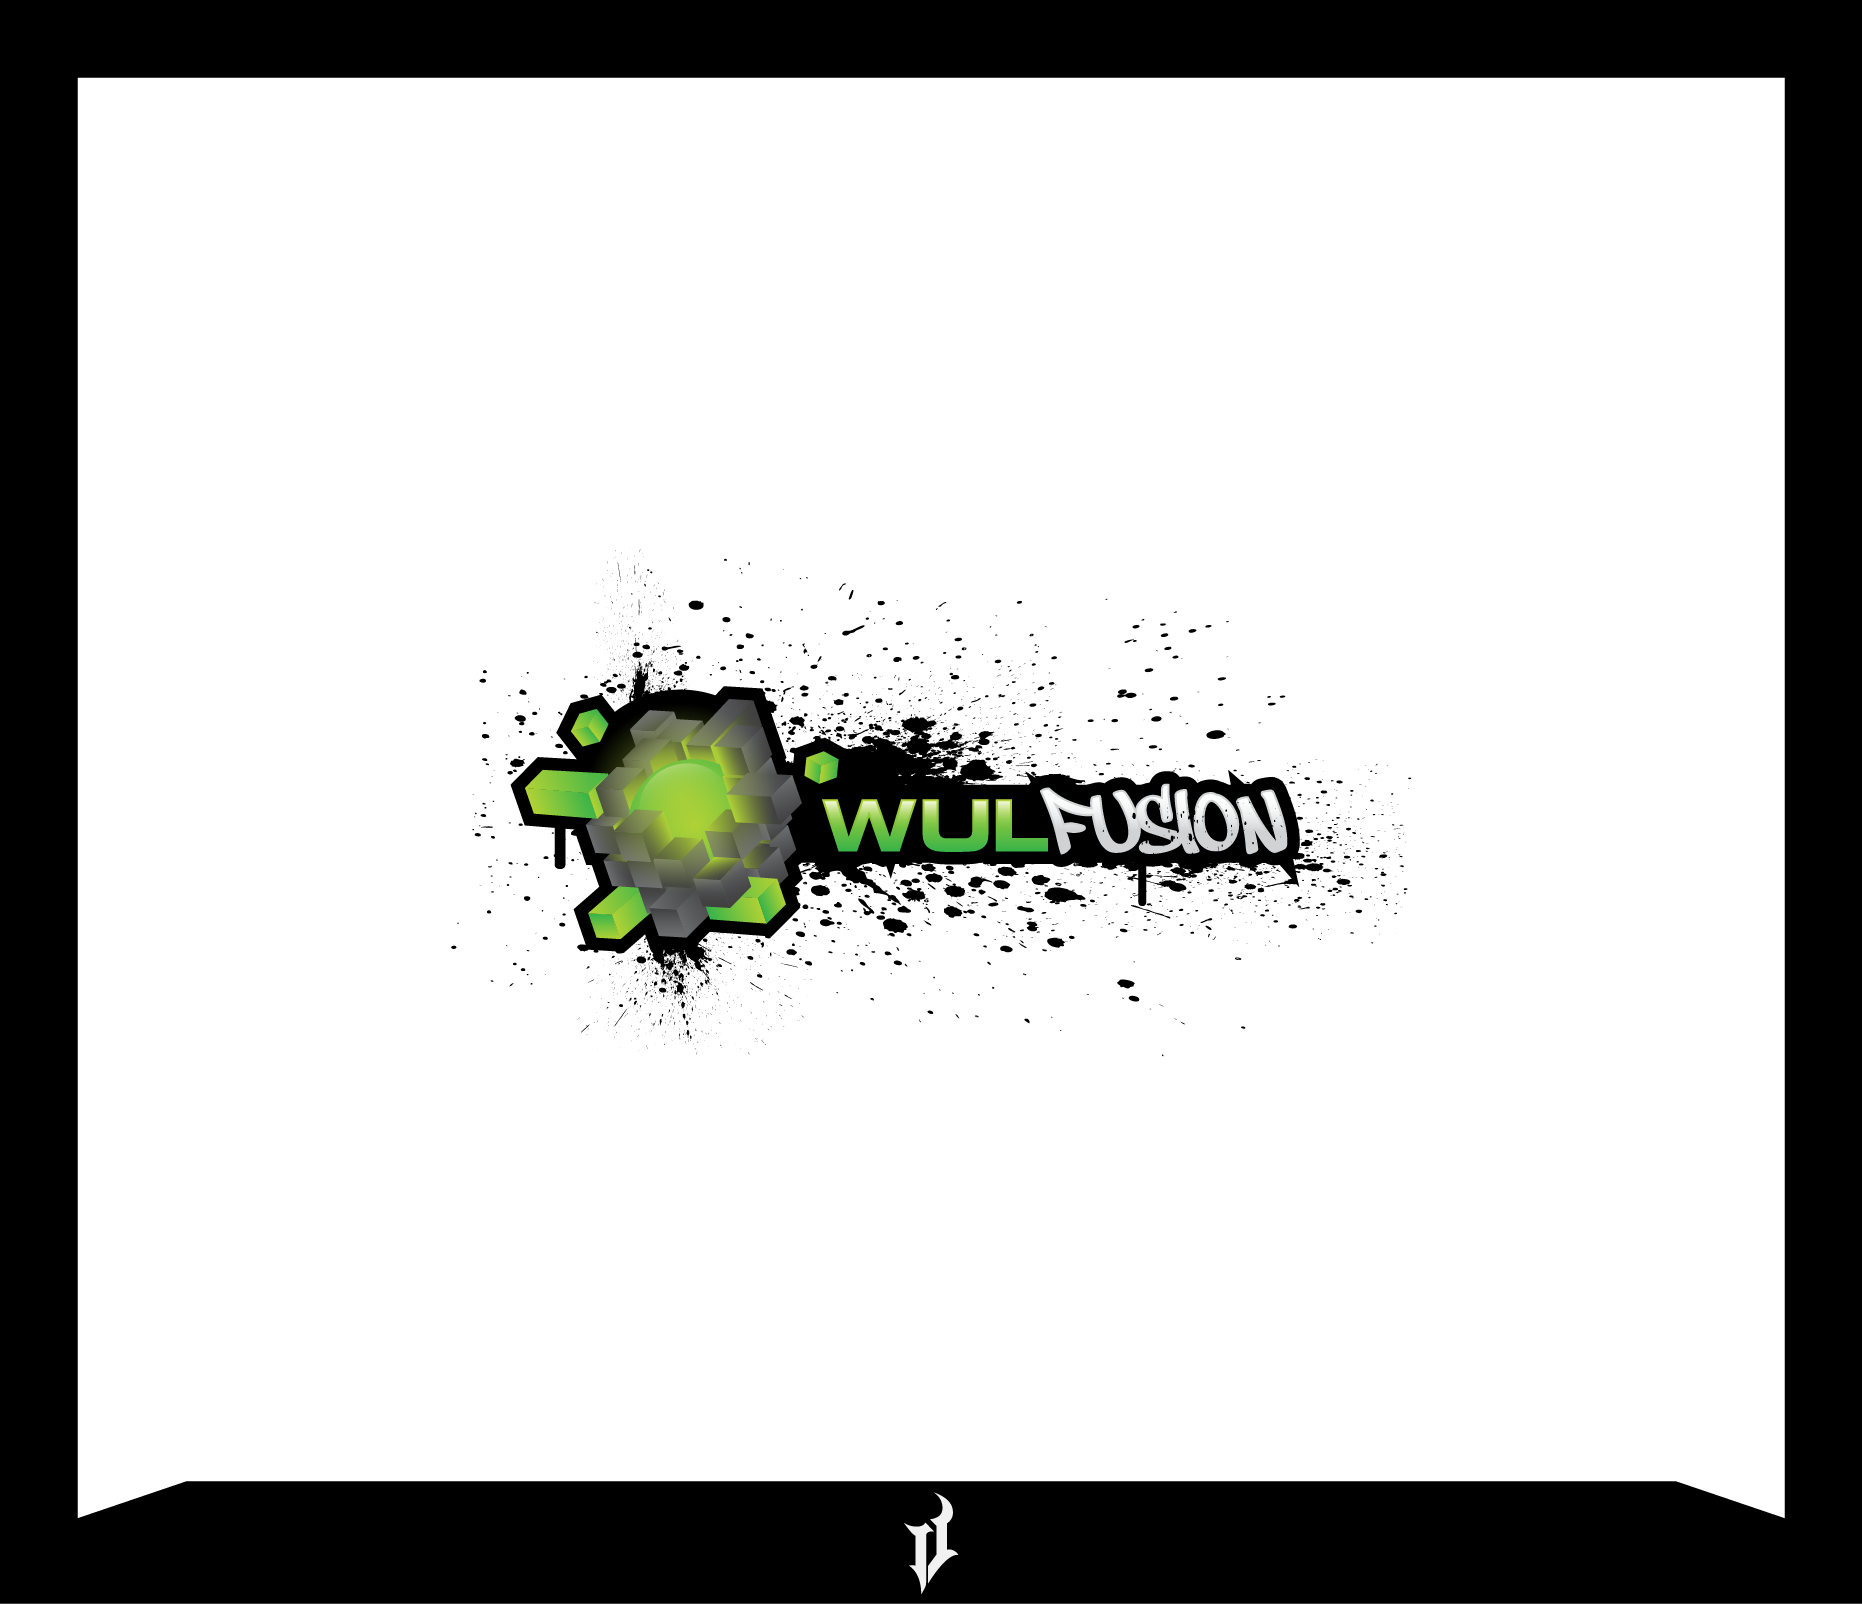 New logo wanted for WULFUSION